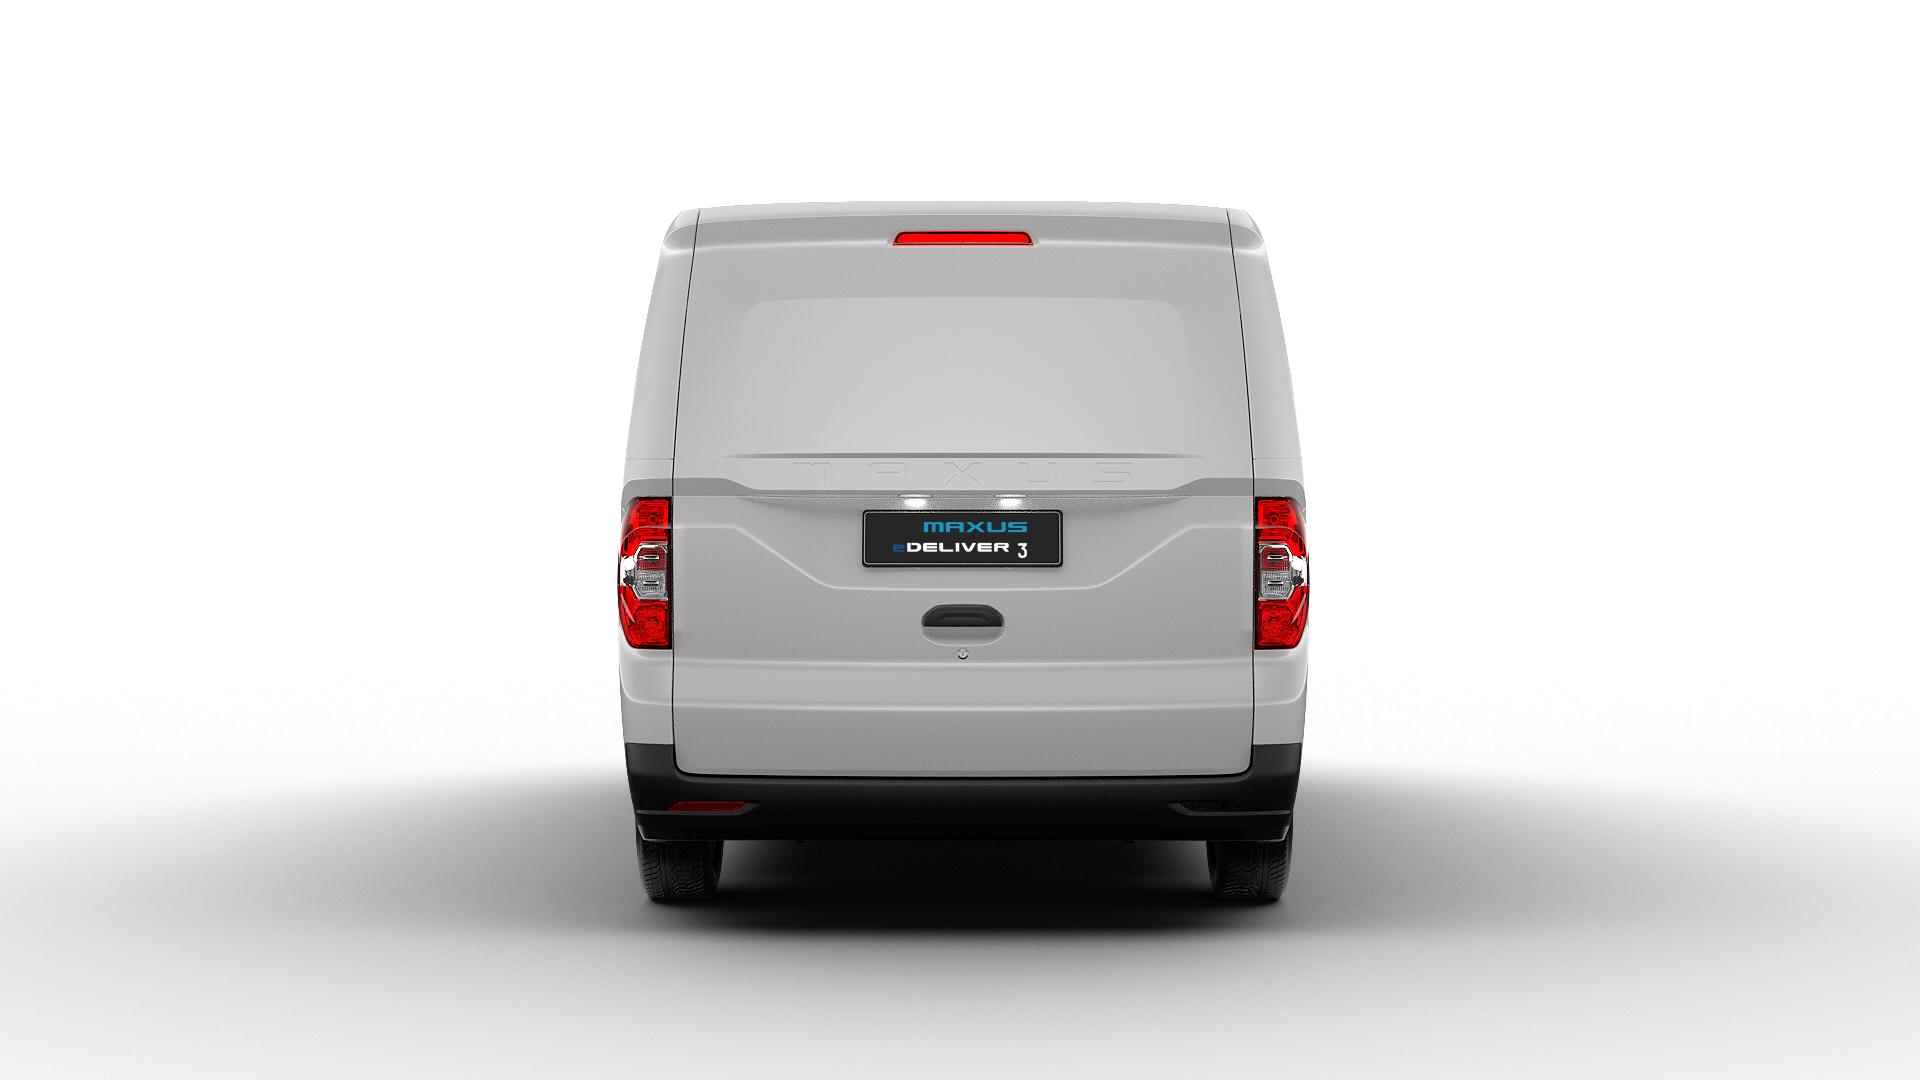 e Deliver 3 - rear view (optional extra)